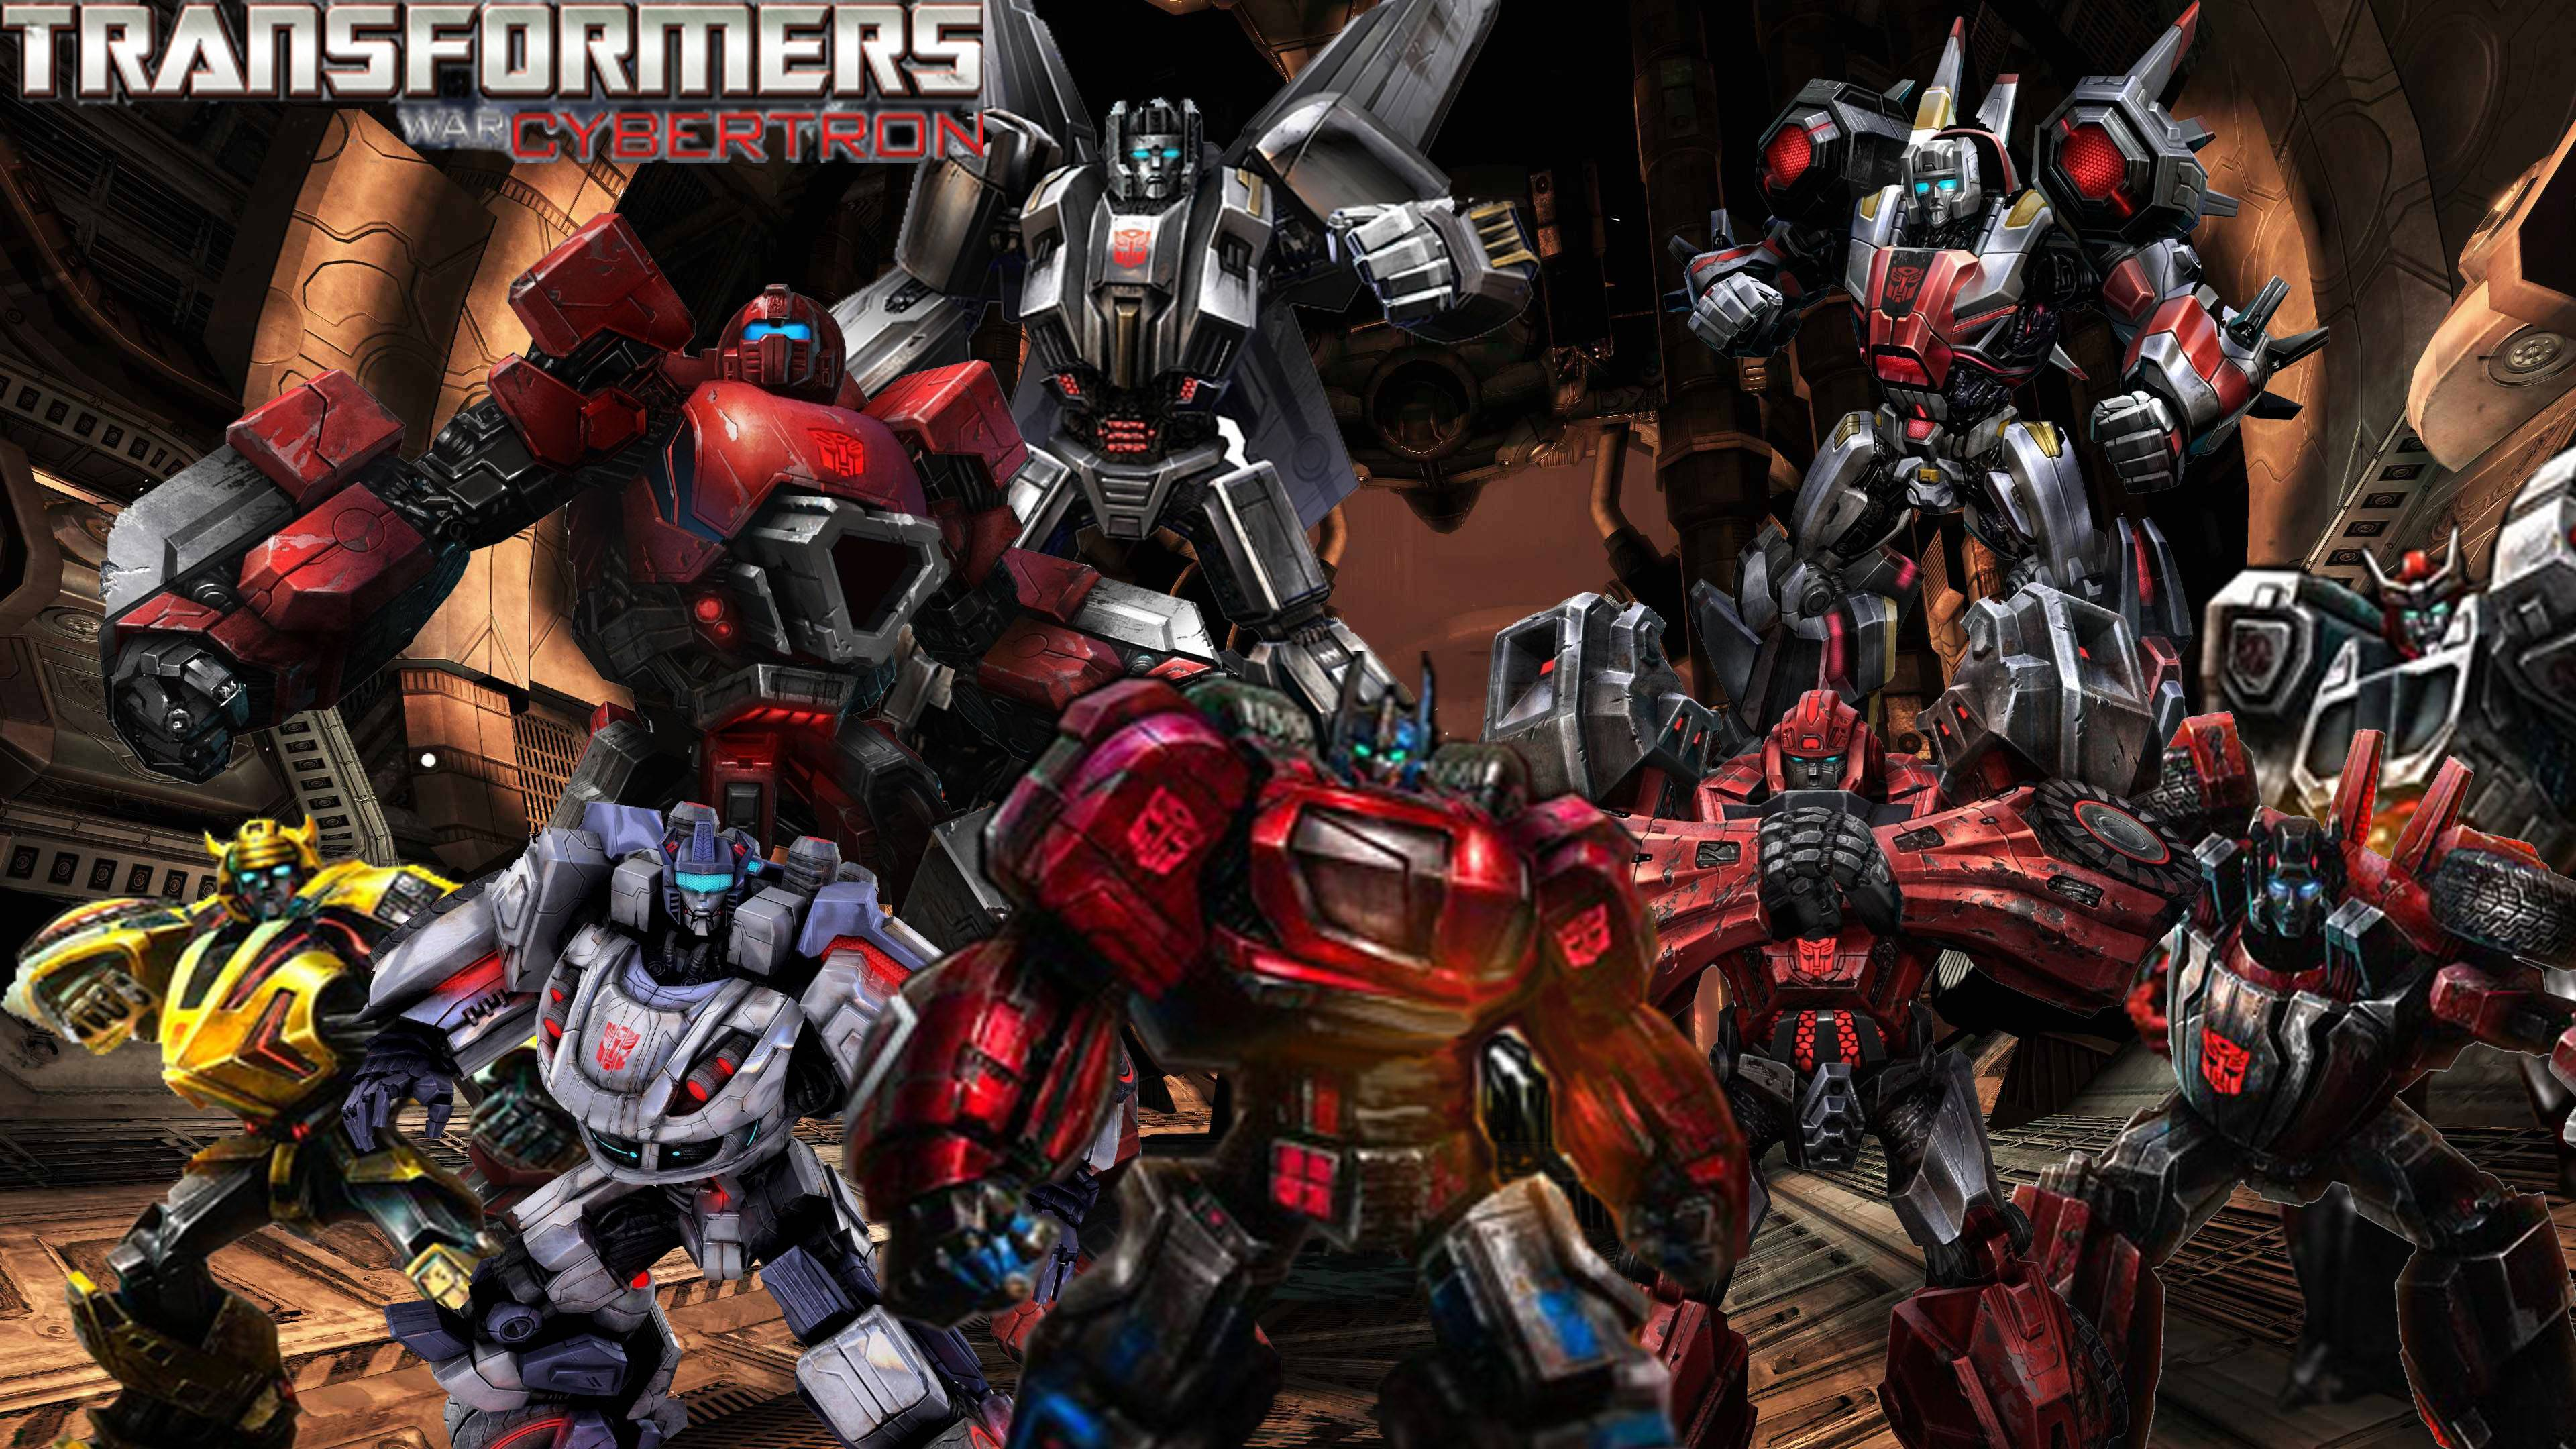 Transformers Fall Of Cybertron Wallpaper Fantastic 3840x2160